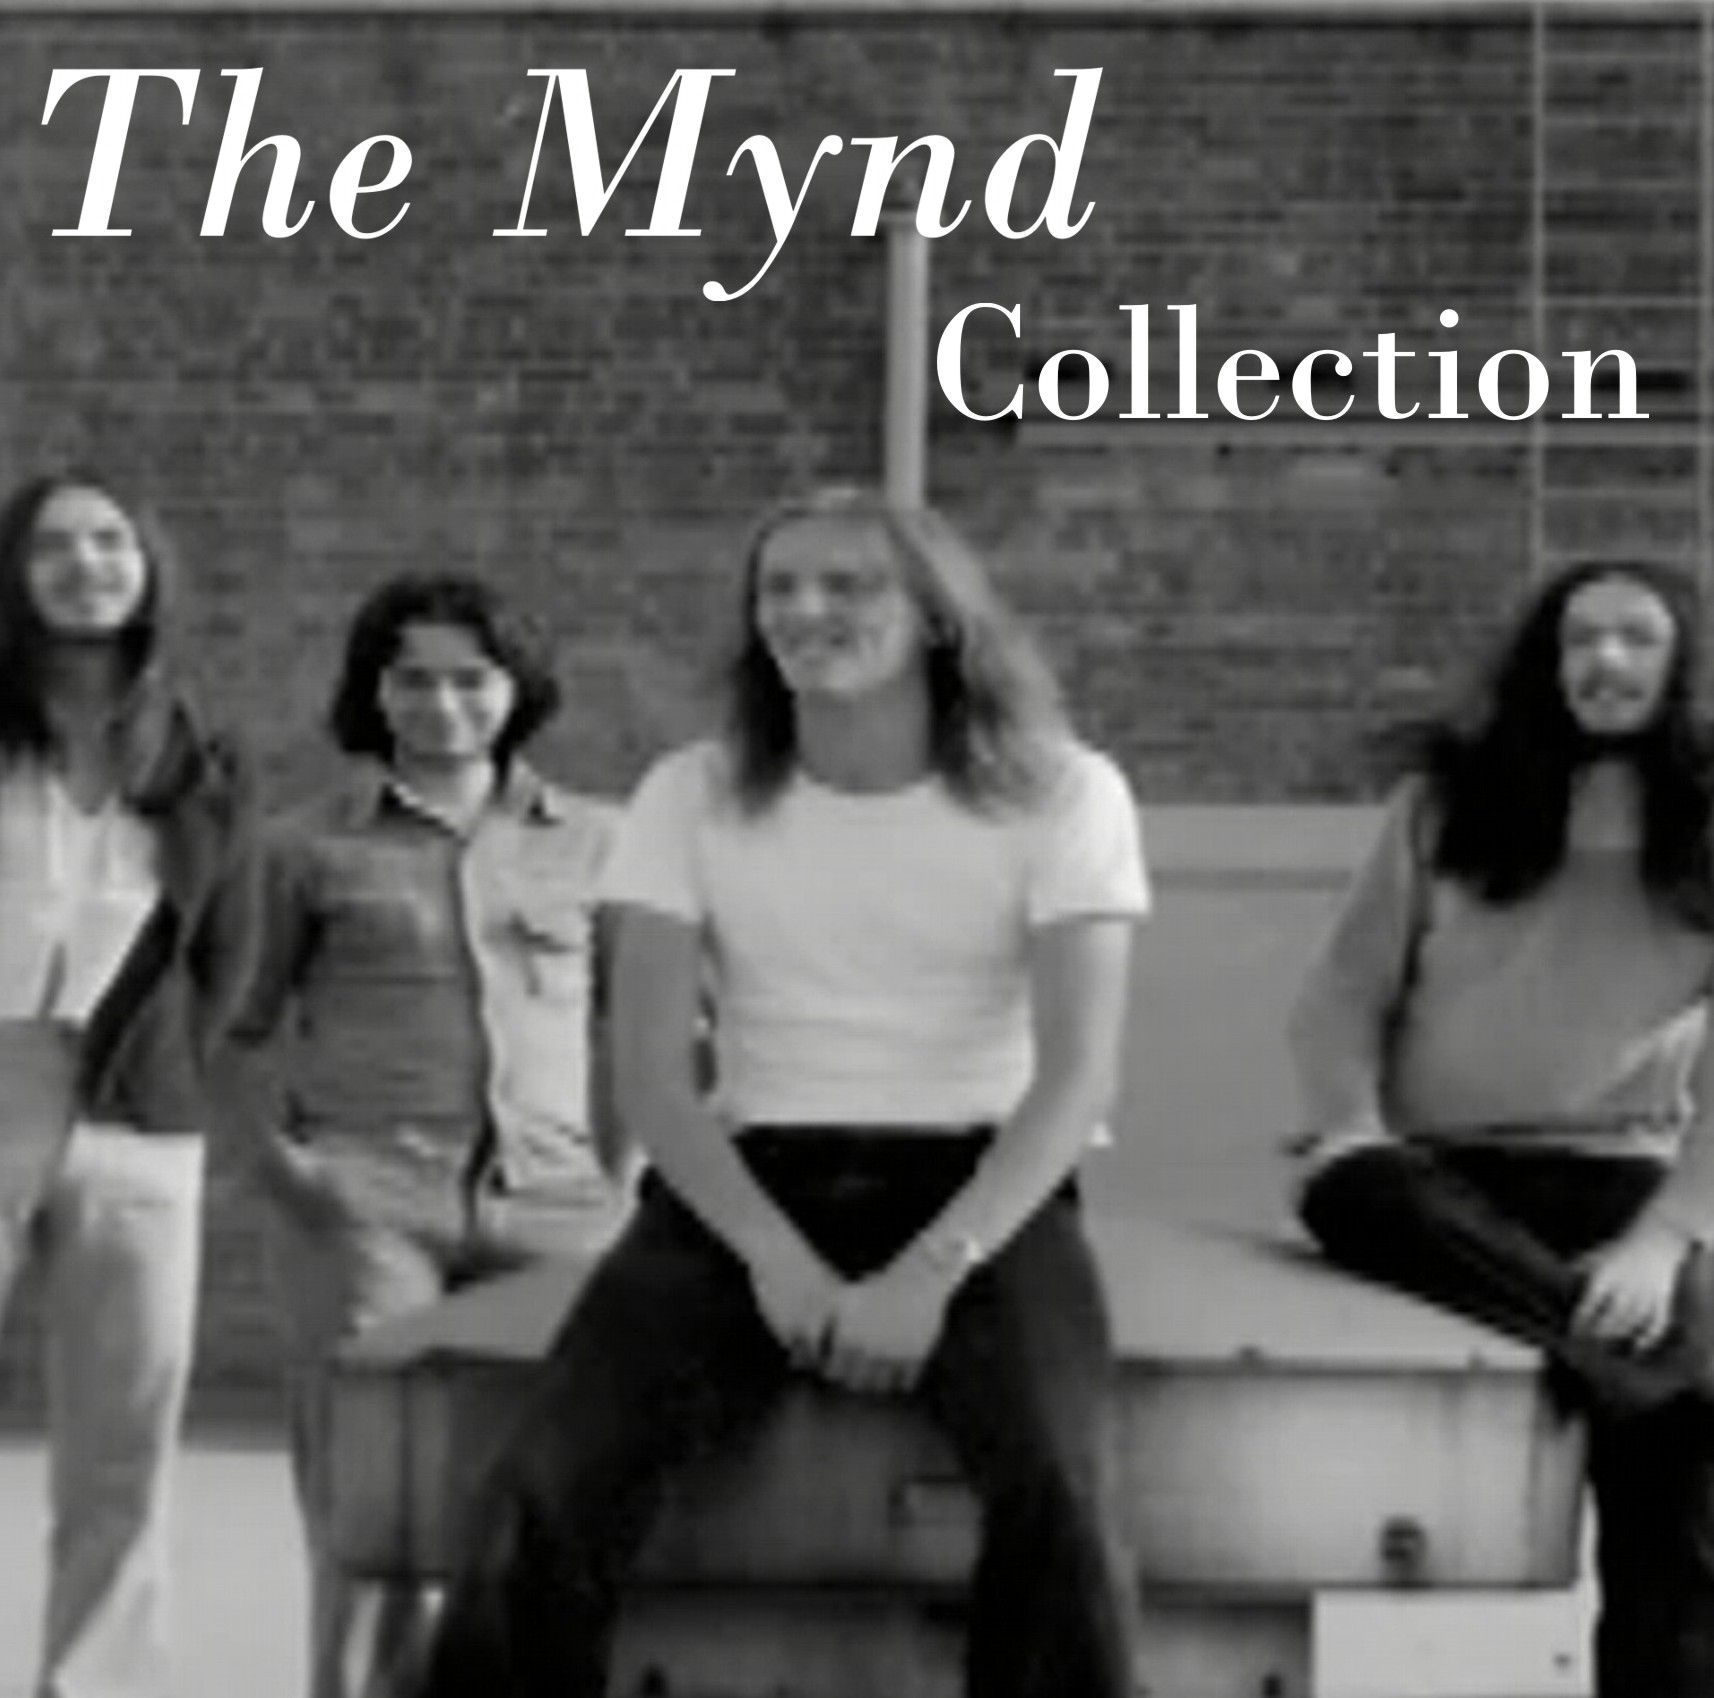 The Mynd Collection